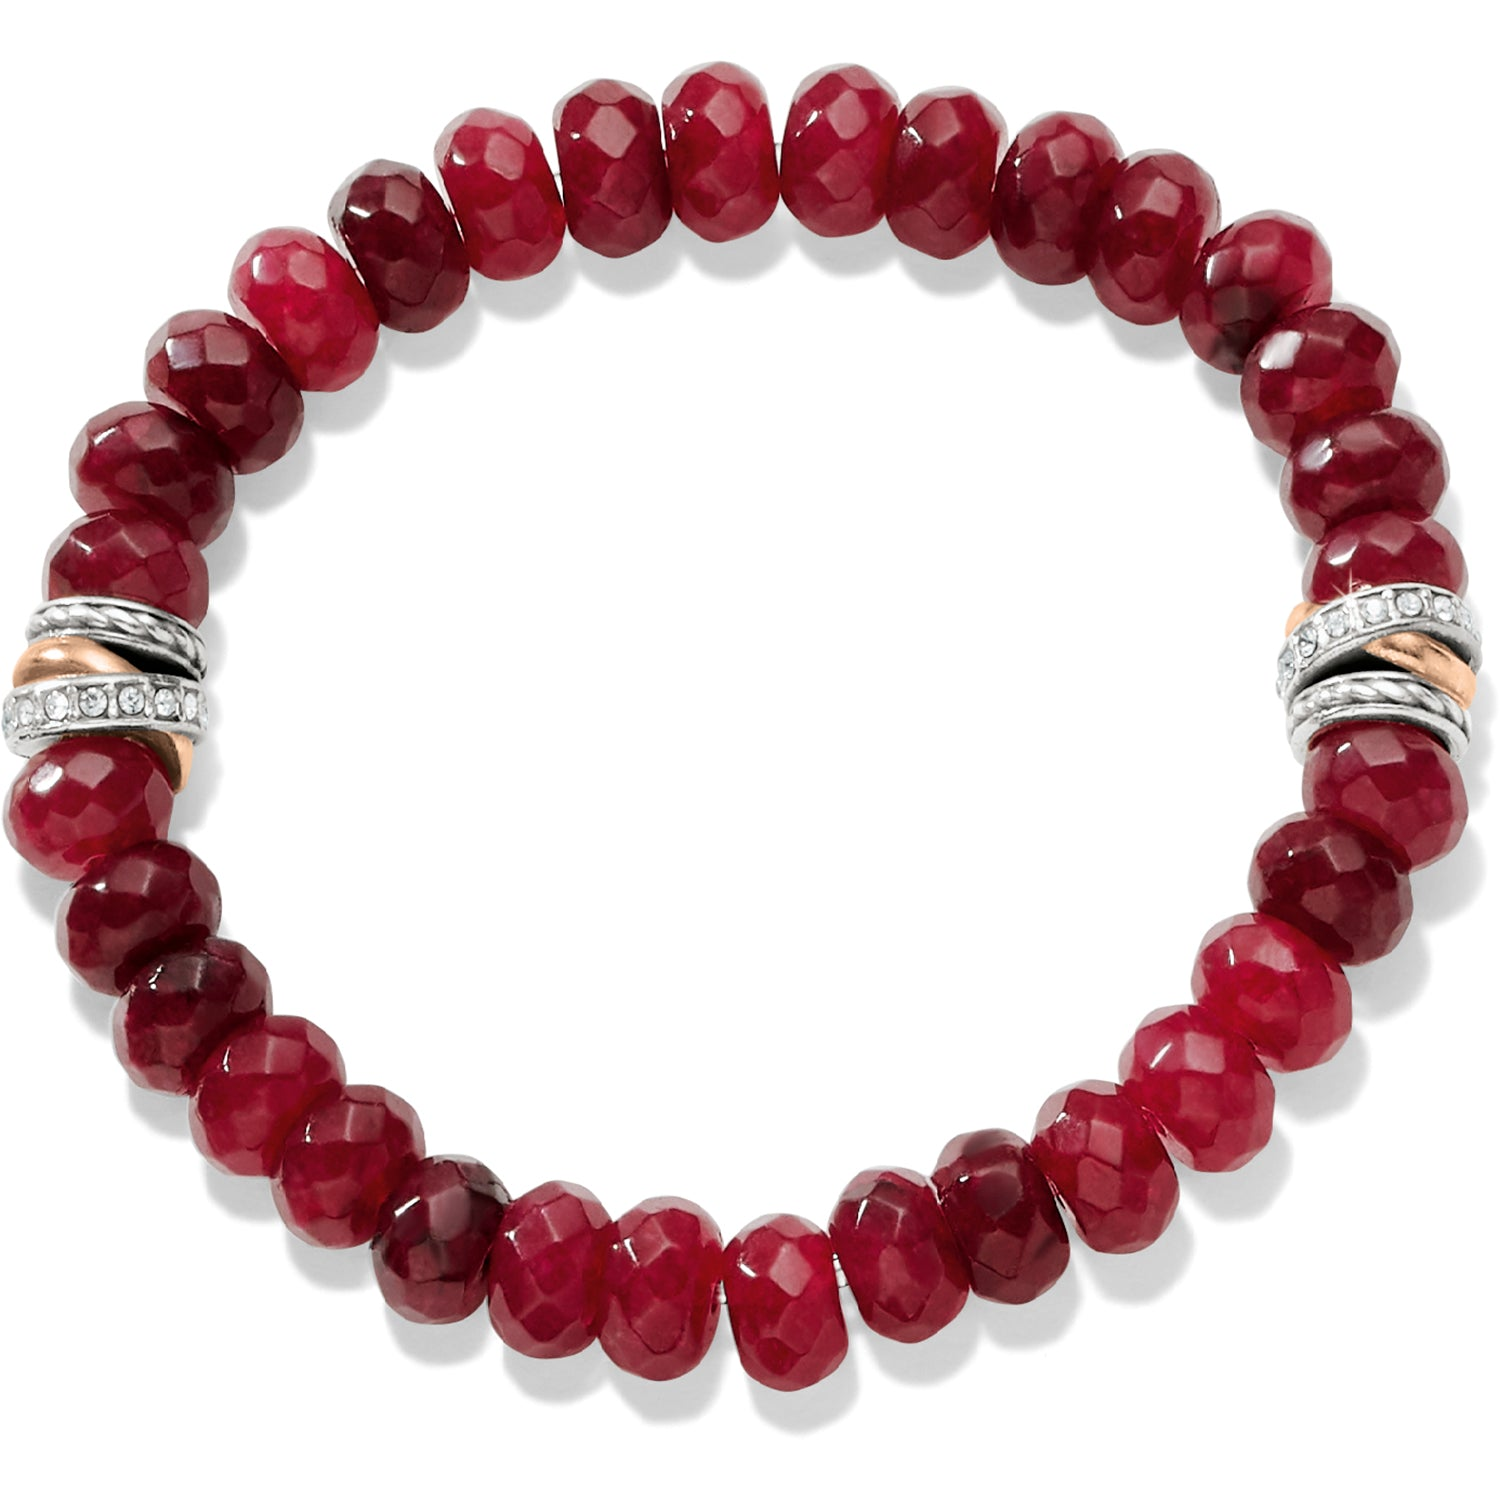 Brighton Jewelry Neptune's Rings Ruby Stretch Bracelet. Symbolizing brotherhood, benevolence and goodwill, faceted ruby chalcedony beads in a red hues encircle your wrist. On both sides, a tumble of Silver plated/Light Rose Gold rings signals sleek sophistication.